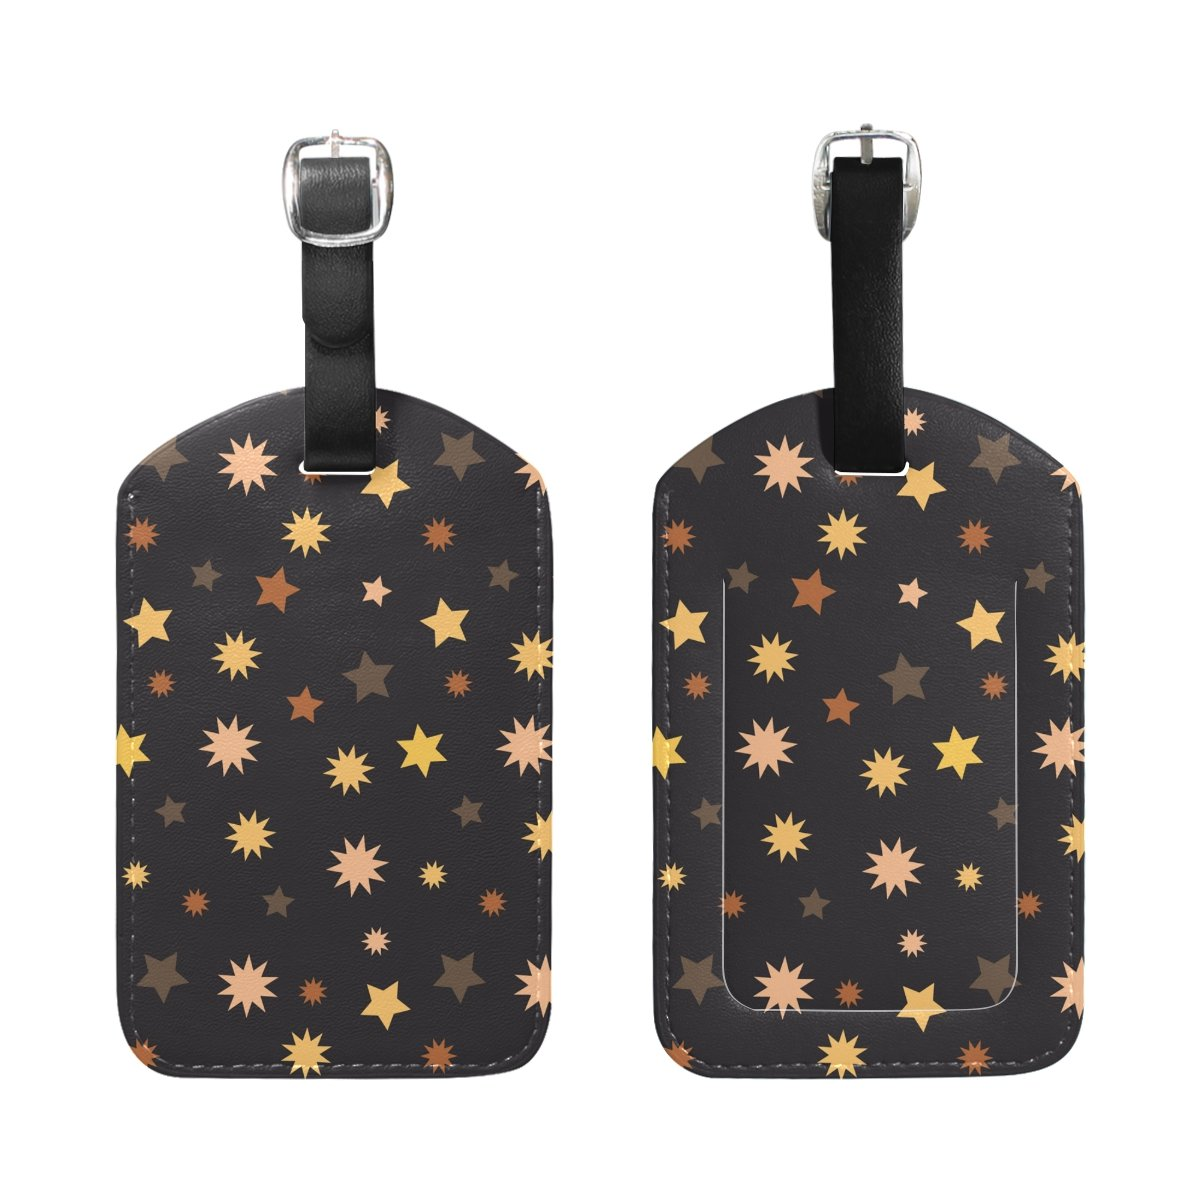 Saobao Travel Luggage Tag Colorful Star PU Leather Baggage Travel ID